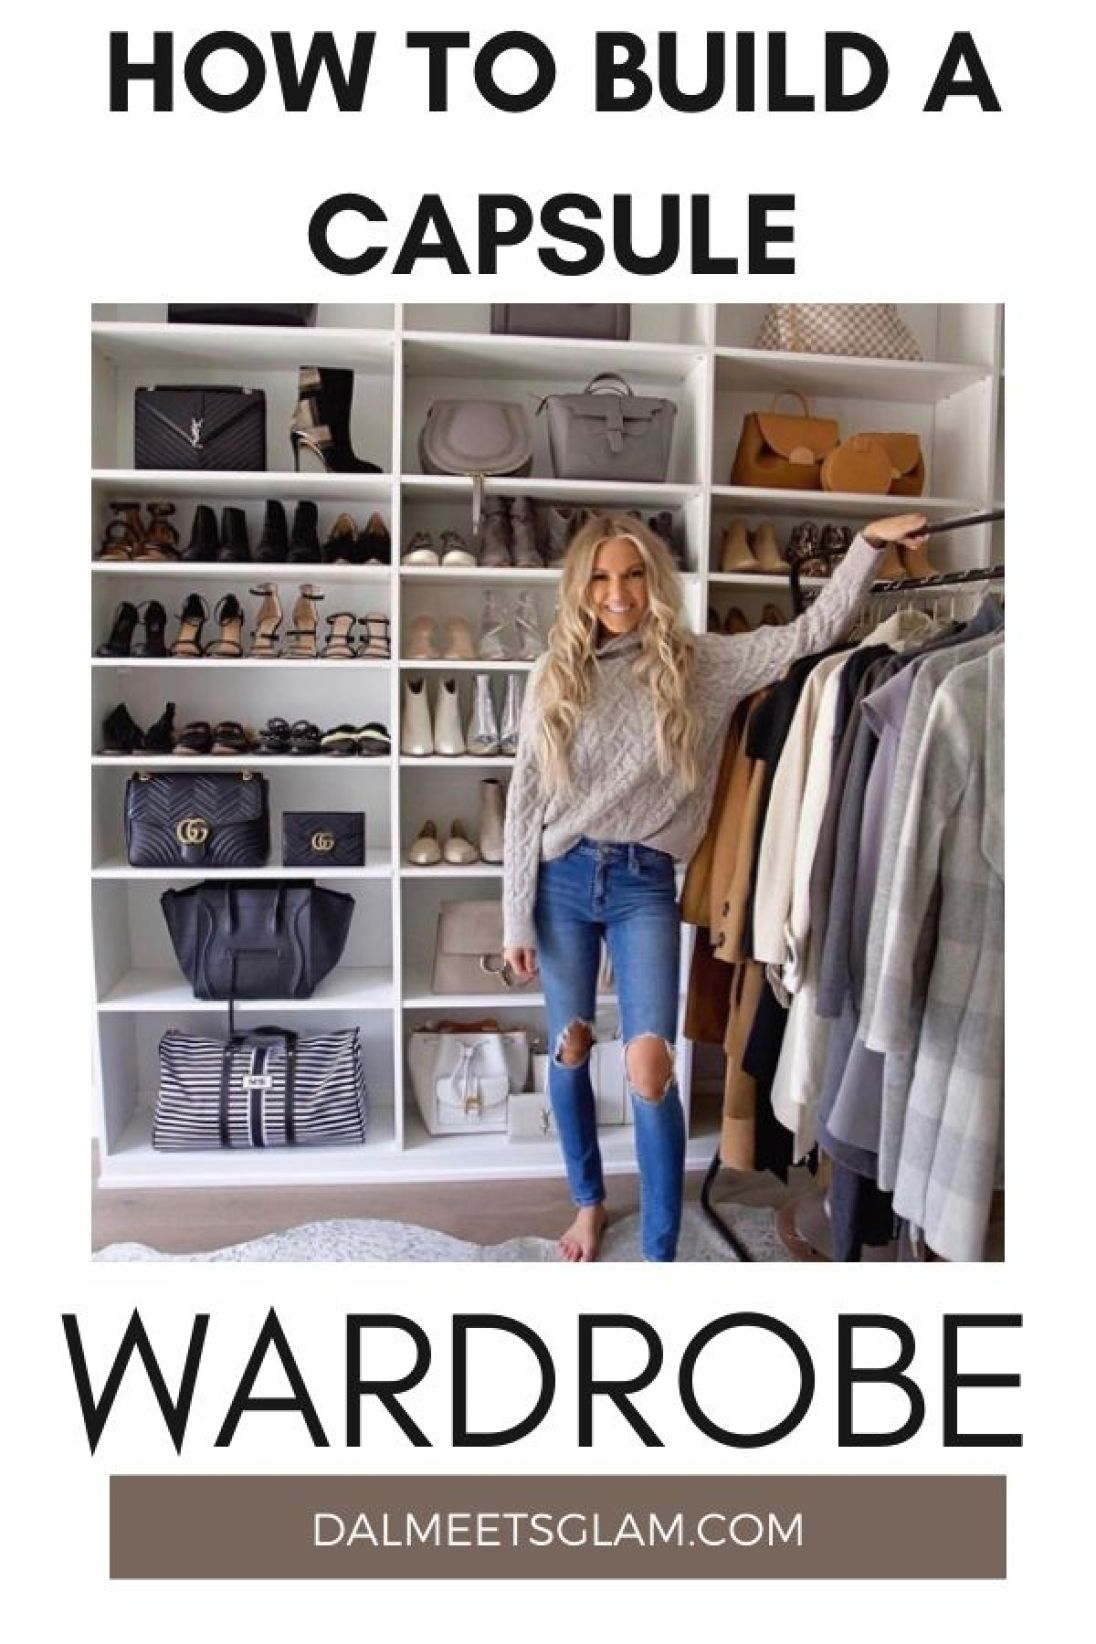 10 Steps To Build a Functional Wardrobe From Scratch